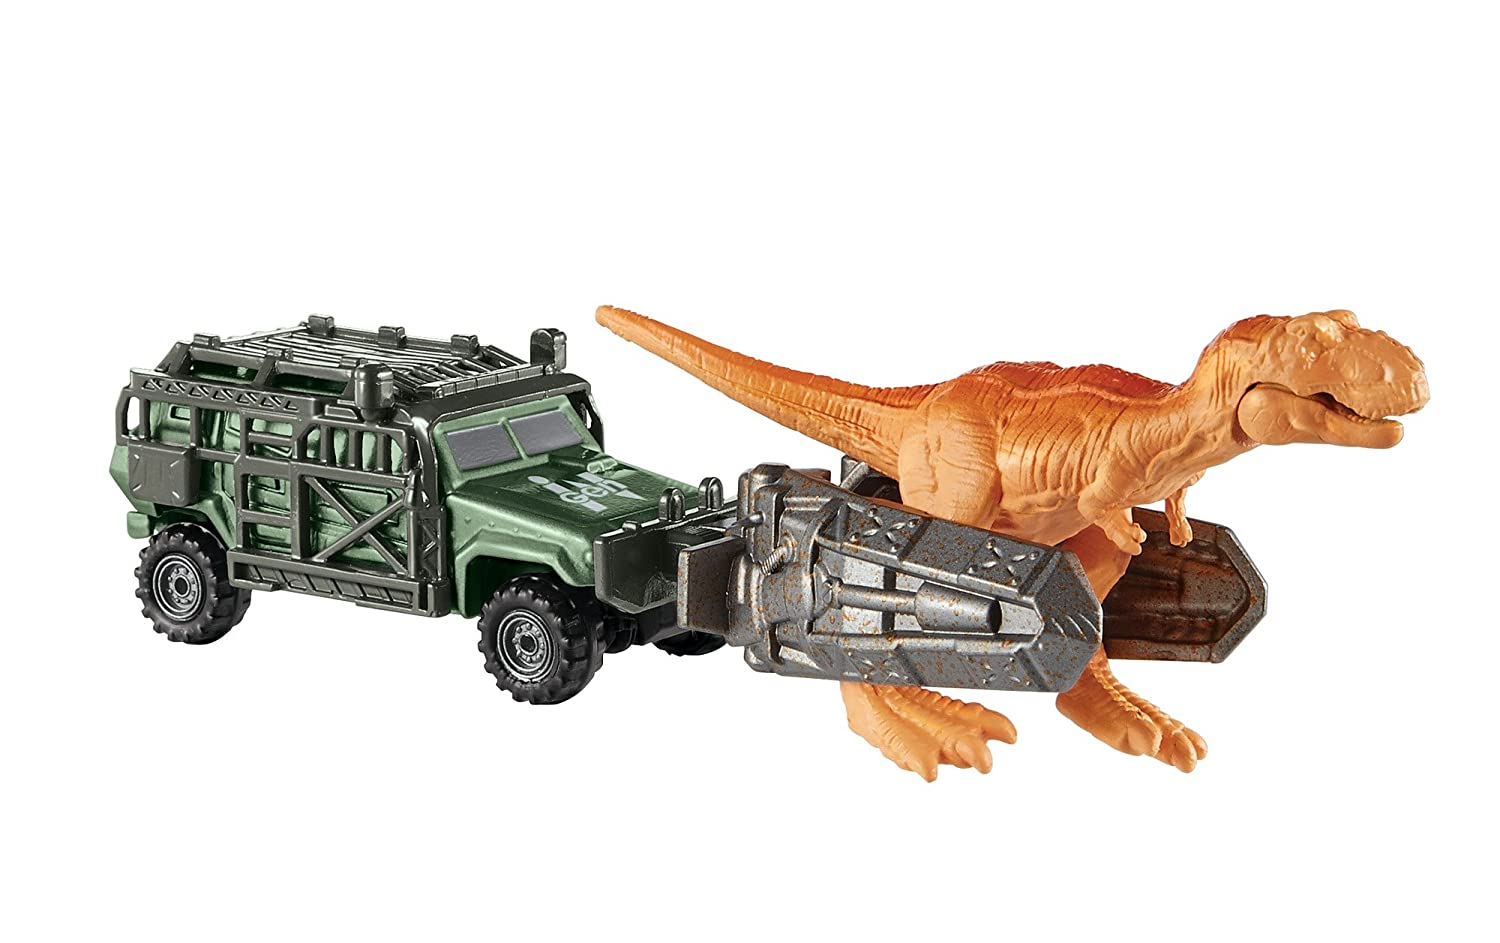 Matchbox Jurassic World Dino Transporters Tyranno-Hauler Vehicle Fisher Price / Mattel Canada FMY34